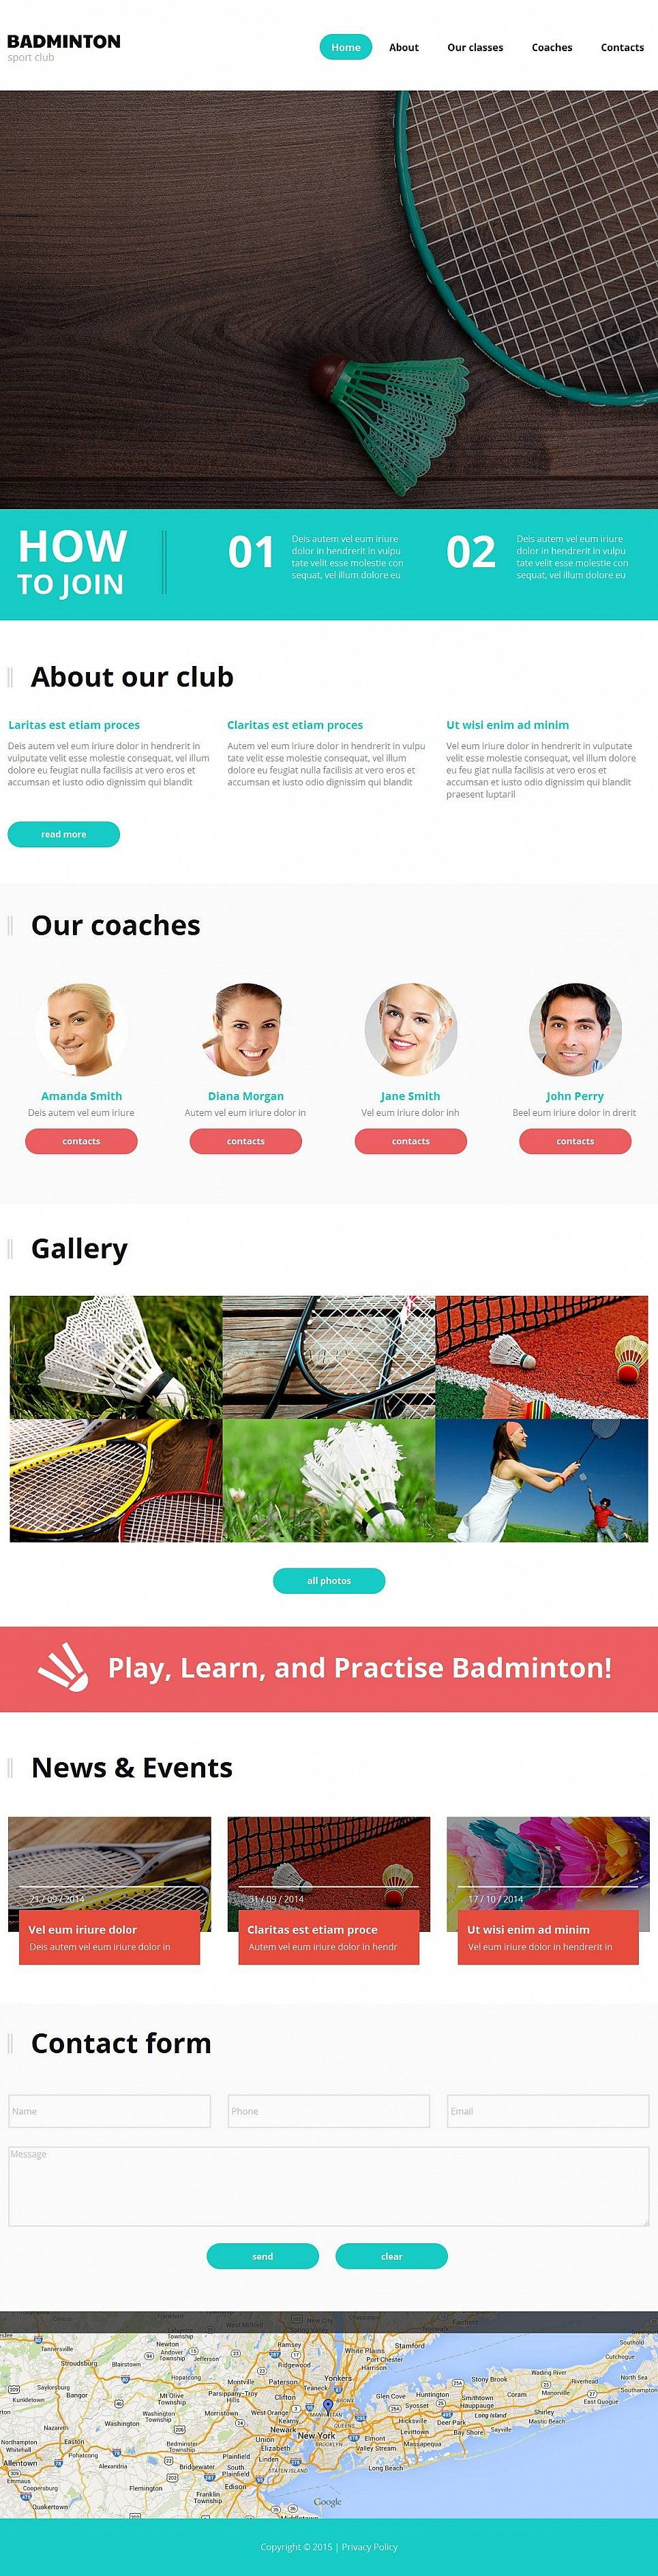 Web Template for a Badminton Club - image